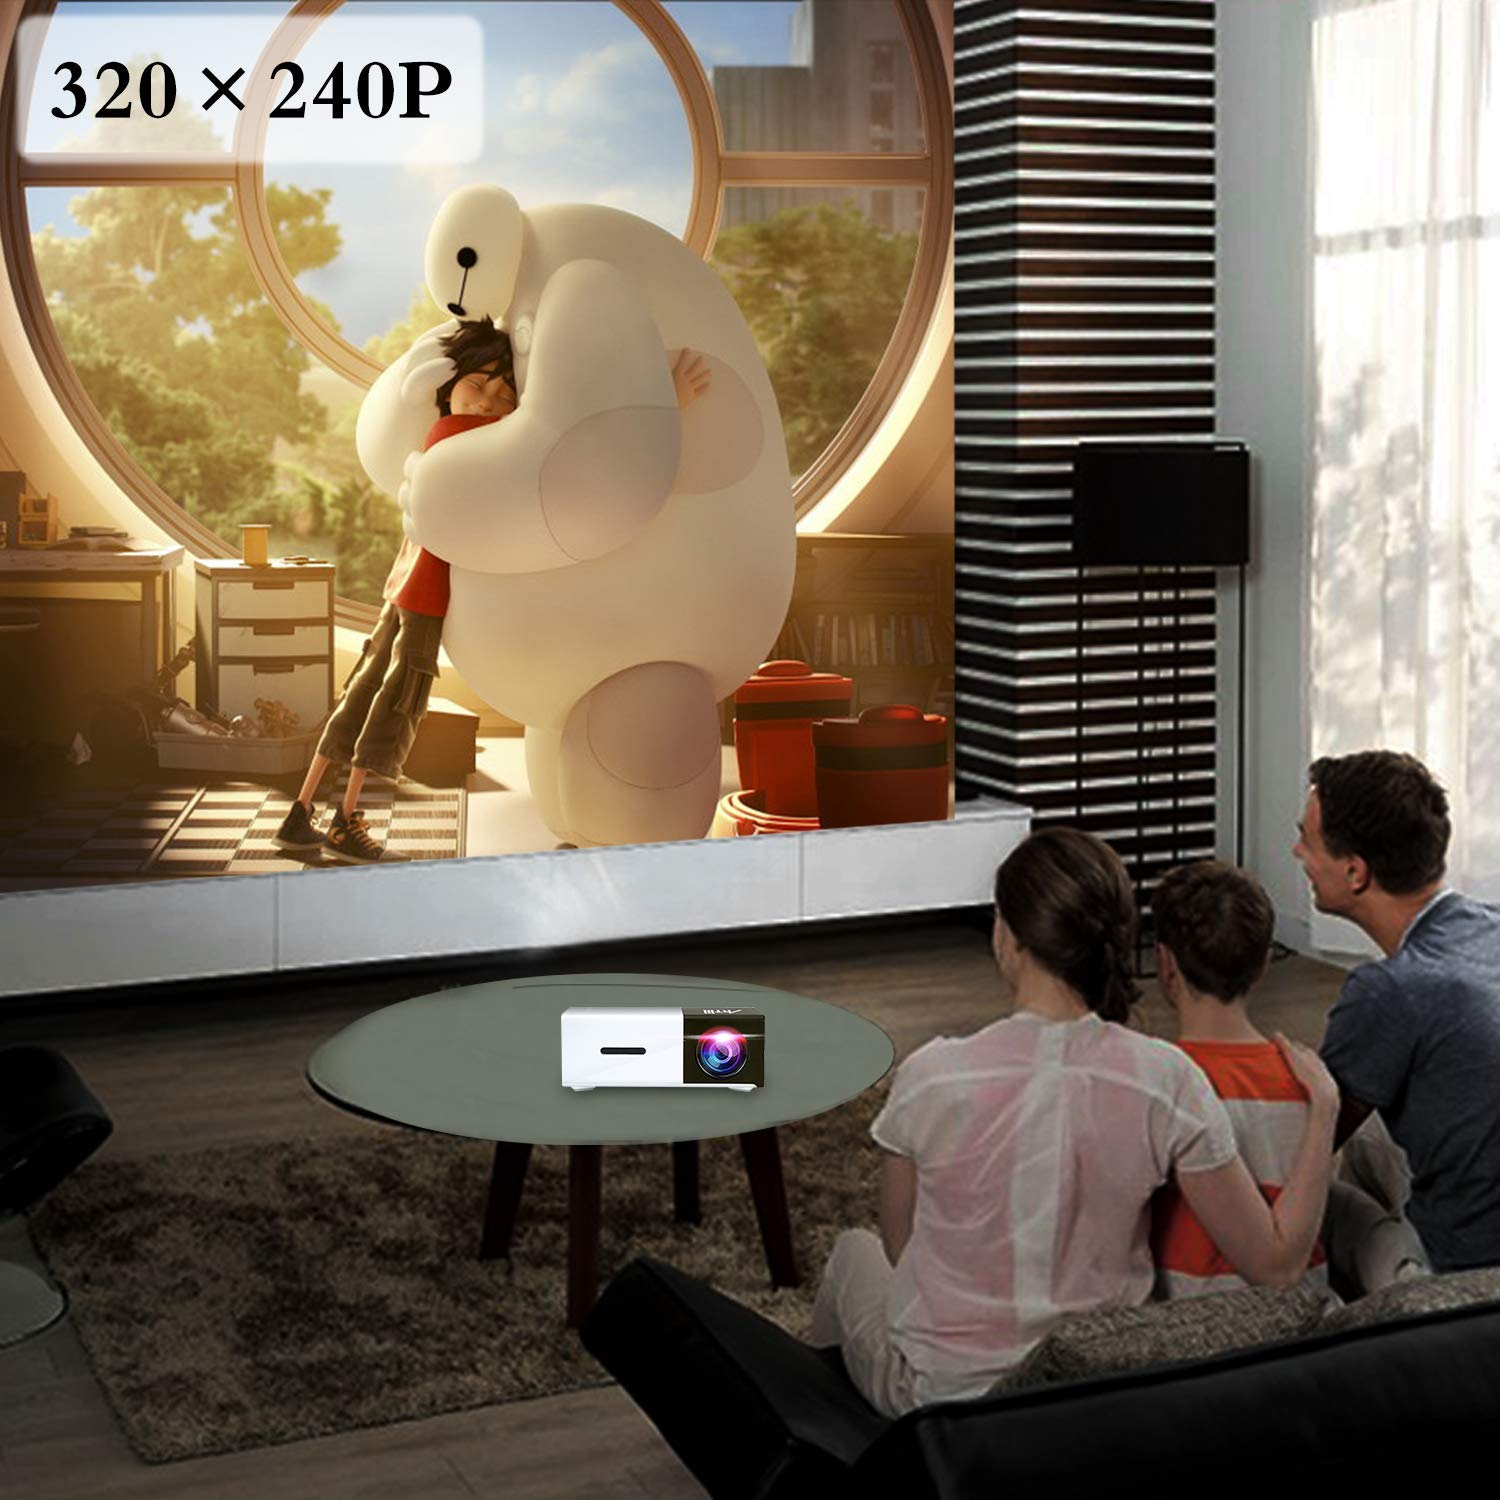 Amazon.com: Pico Projector - Artlii 2019 New Pocket Projector, Mini Projector Compatible with Laptop, iPhone Smartphone for Cartoon and Movie, ...